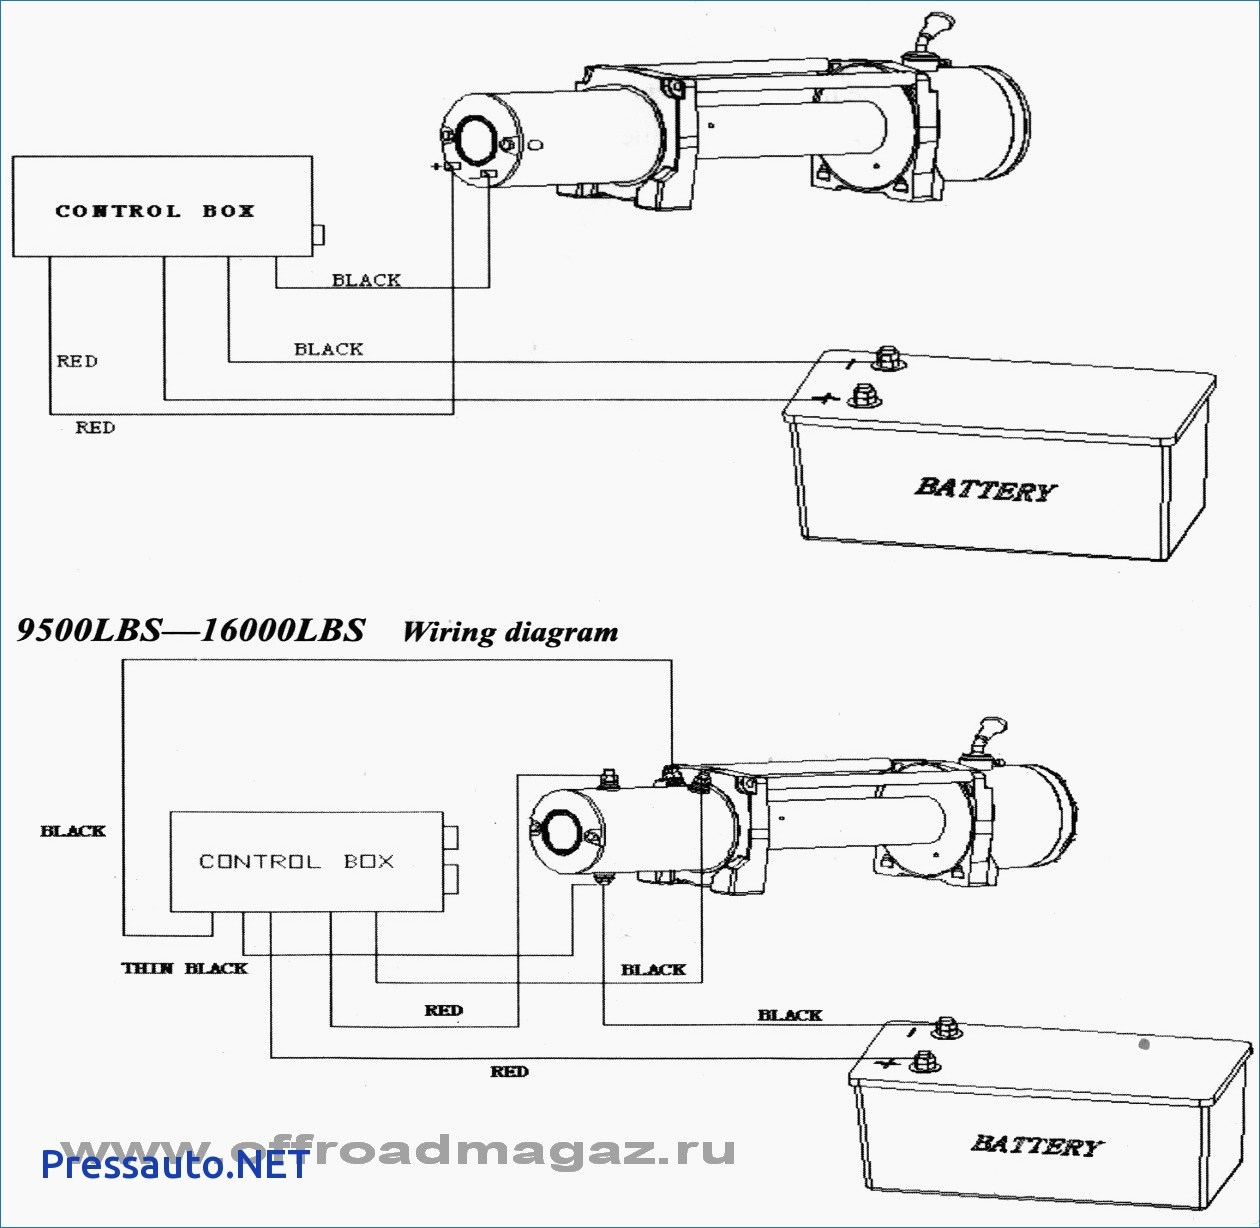 12 volt winch wiring diagram 110 volt winch wiring diagram 12 volt winch solenoid wiring diagram | free wiring diagram